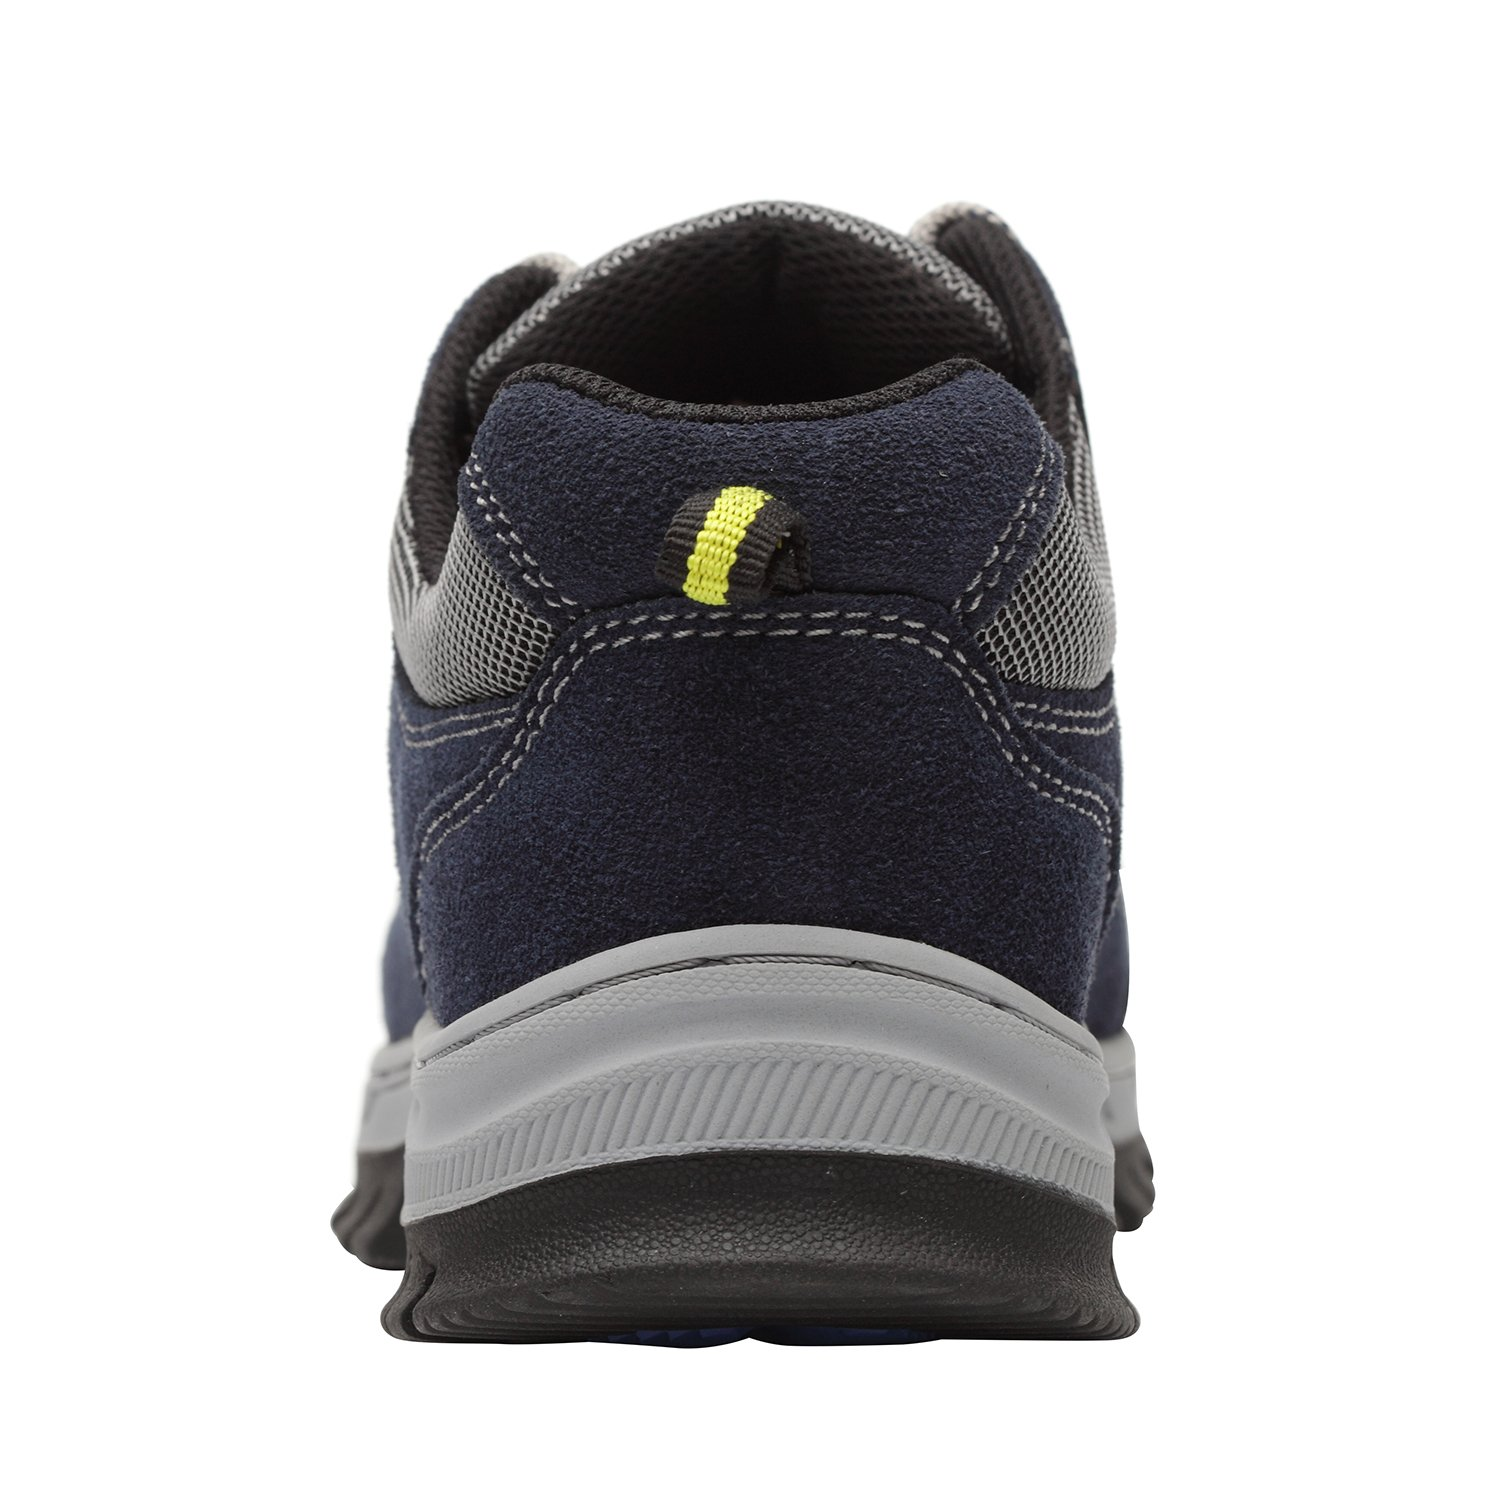 Optimal Women's Safety Shoes Work Shoes Protect Toe Shoes by Optimal Product (Image #6)